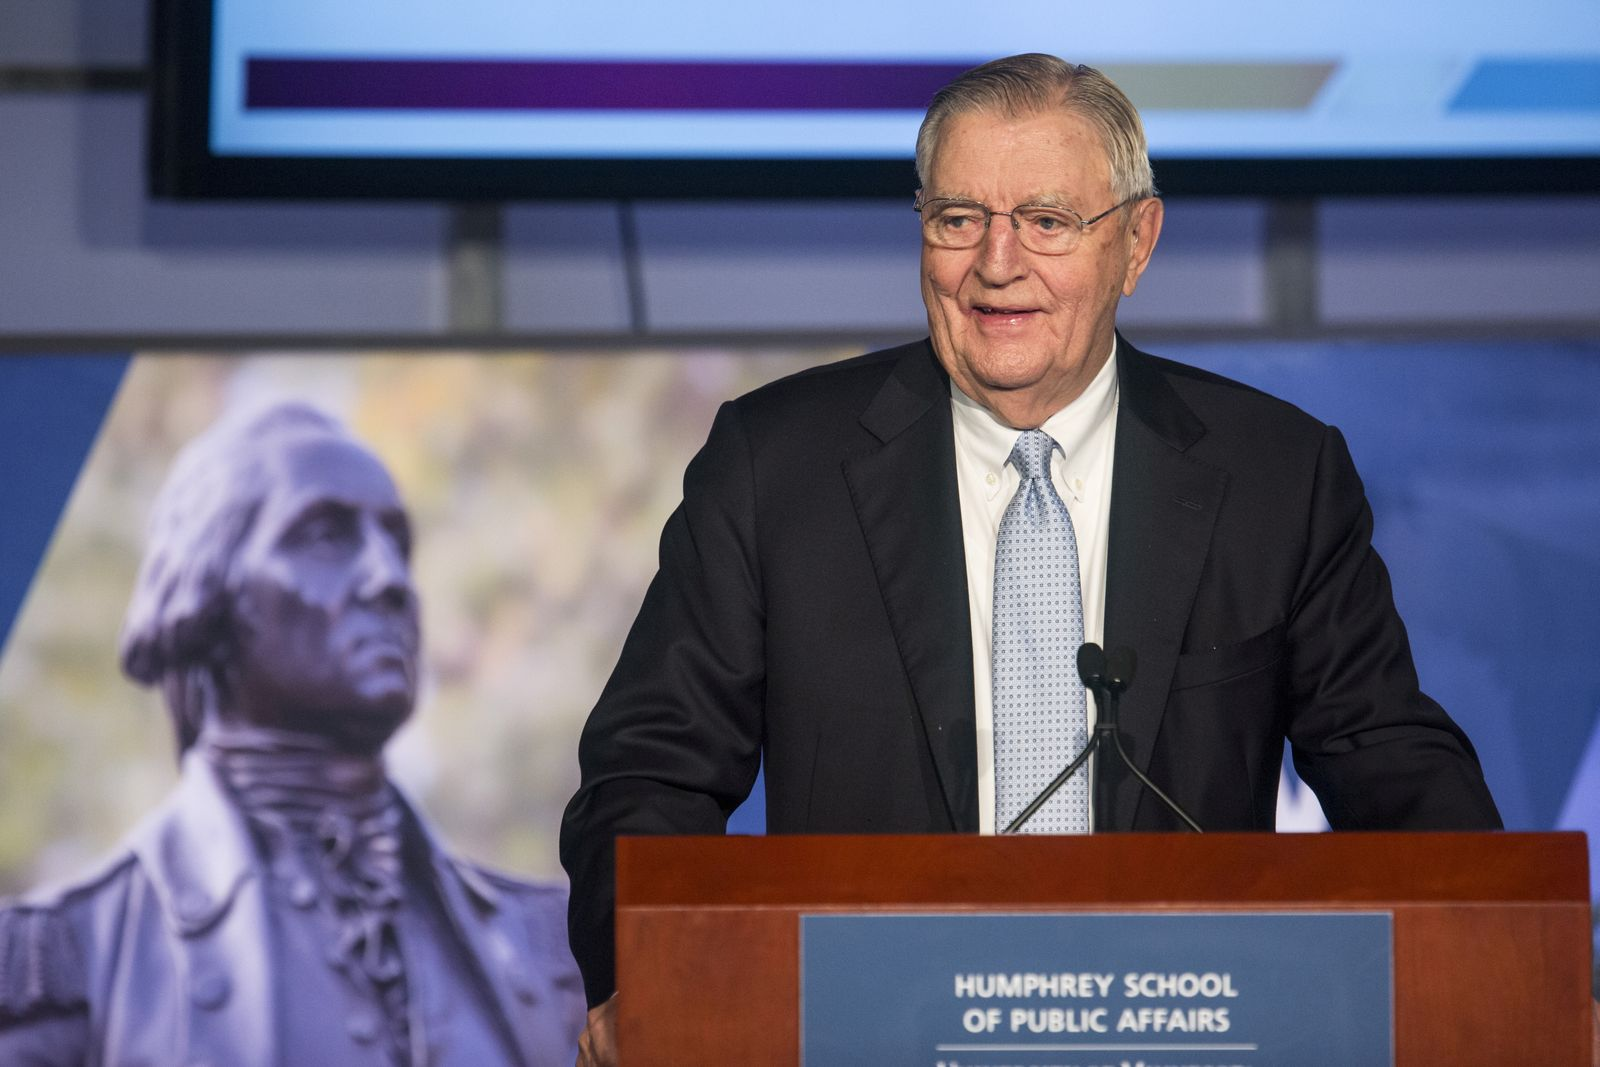 FILE PHOTO: Former Vice President Walter Mondale speaks at an event held in his honor at The George Washington University in Washington